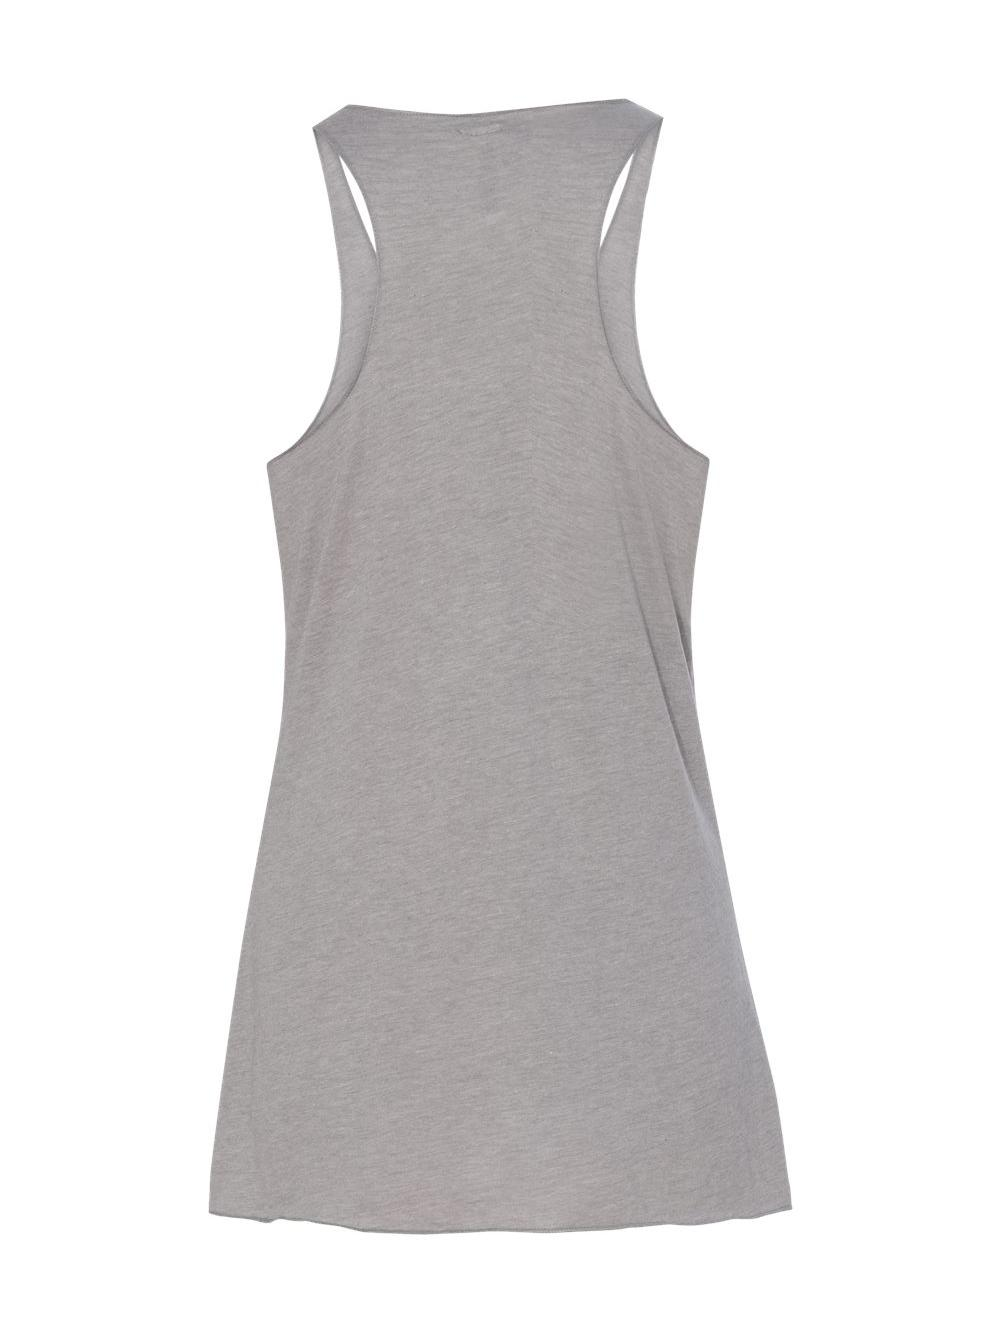 Bella-Canvas-Women-039-s-Triblend-Racerback-Tank-8430 thumbnail 7